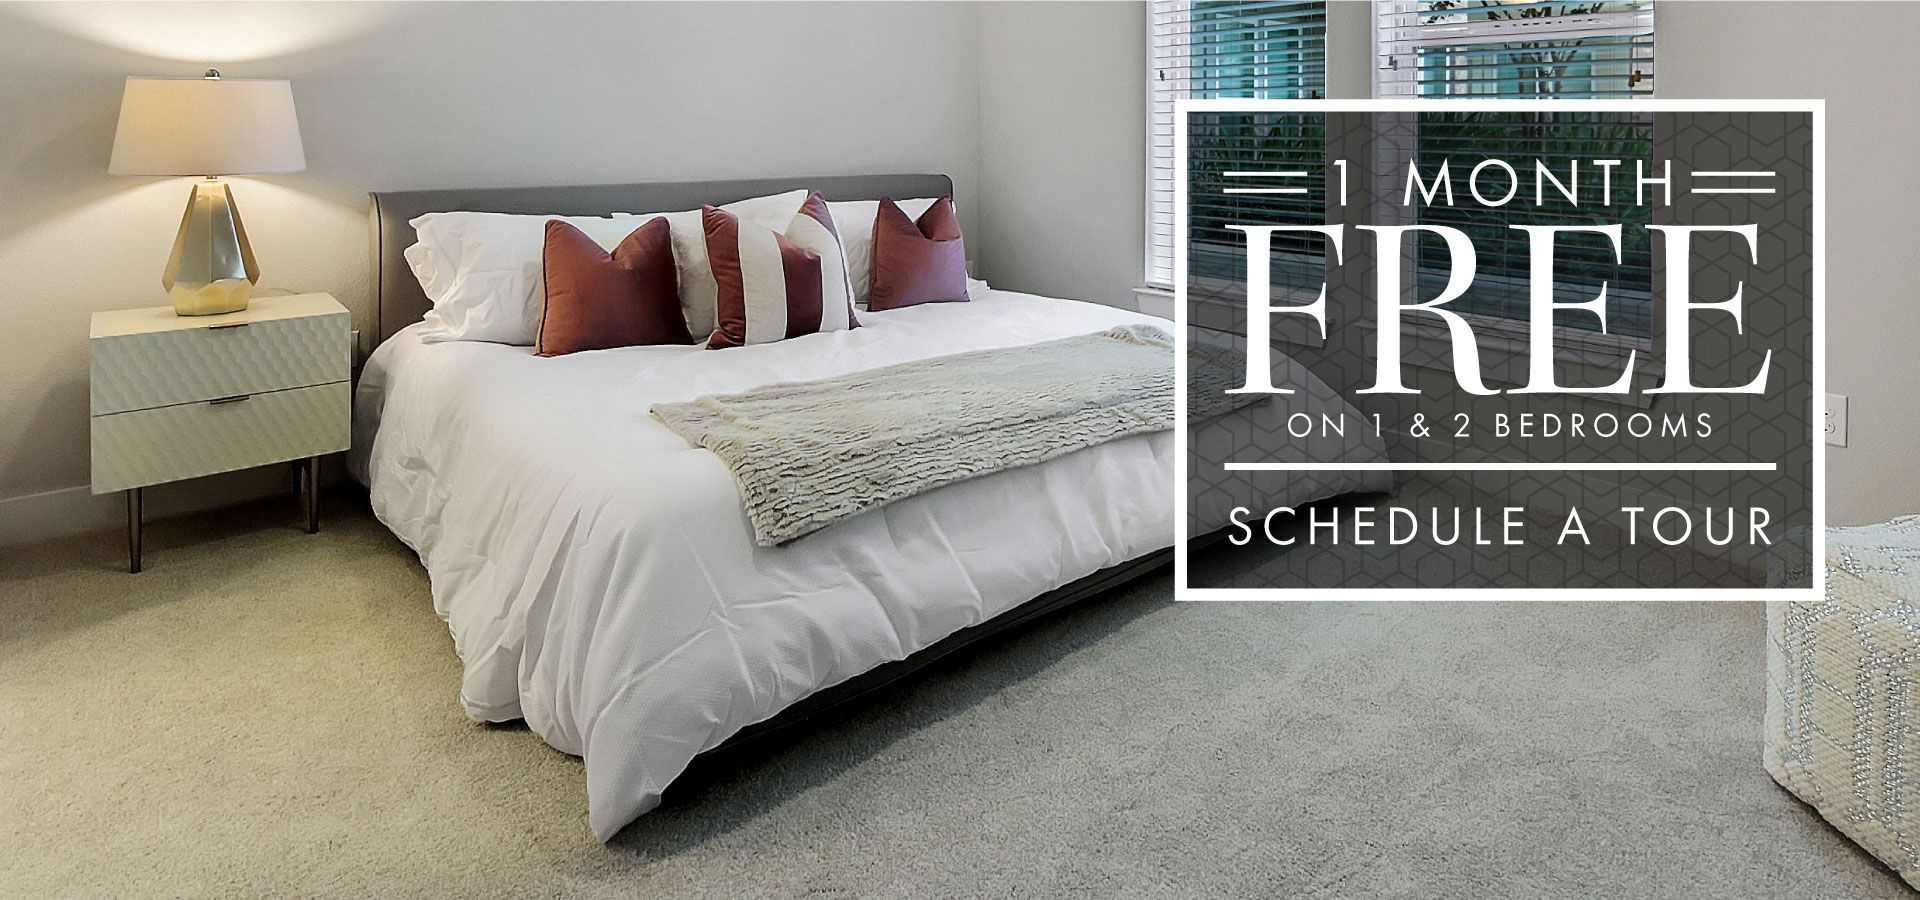 1 Month Free on 1 & 2 Bedrooms   Schedule a Tour